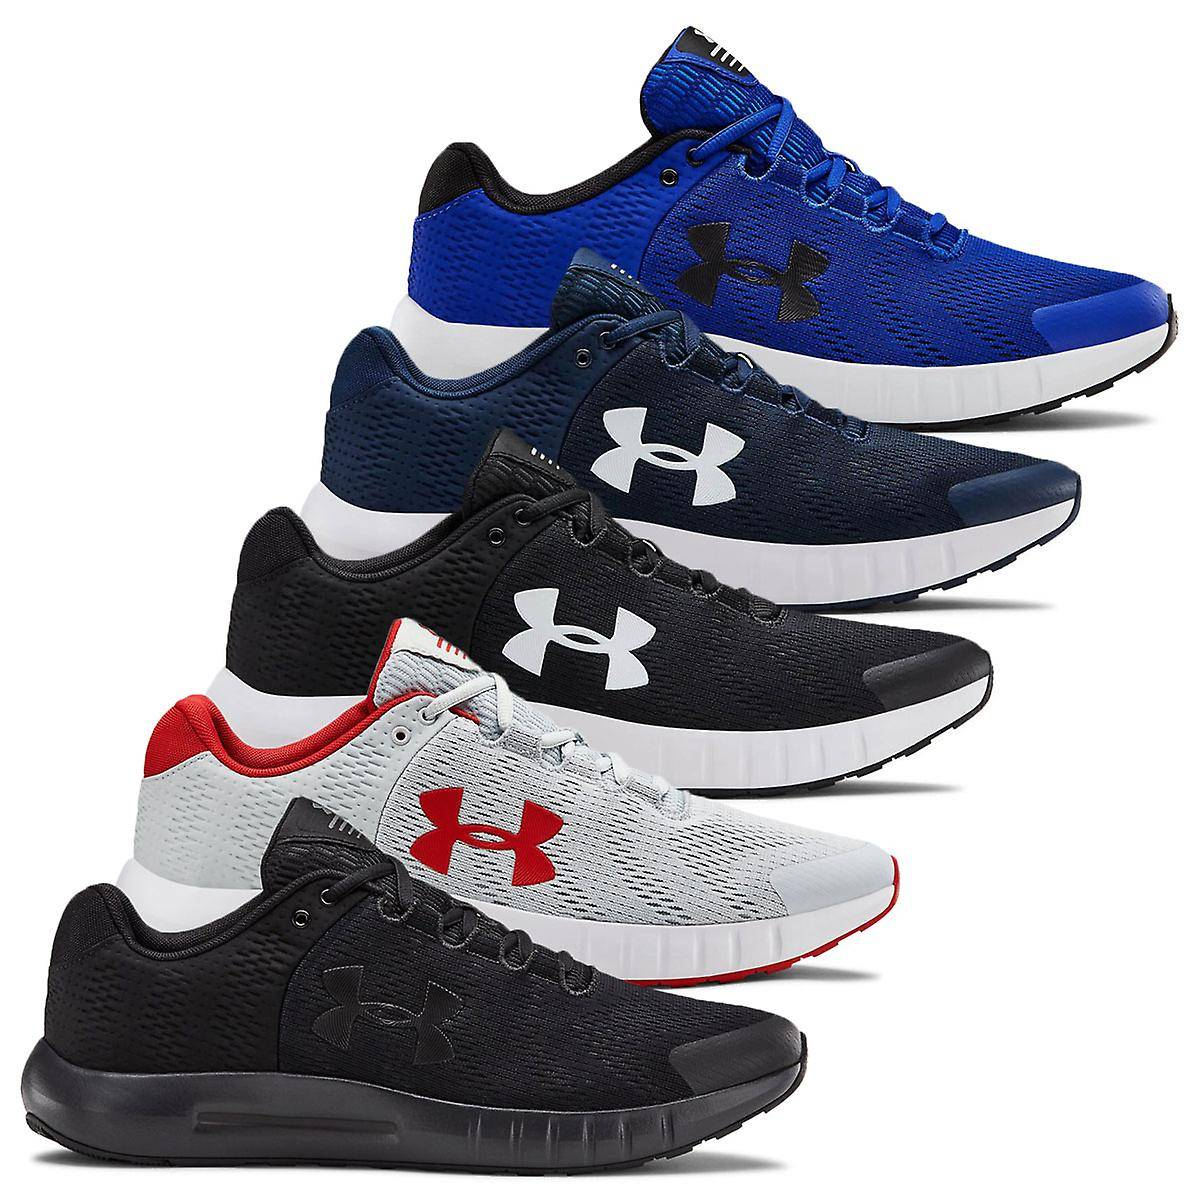 Under Armour Mens UA Micro G Pursuit BP Chaussures de course Noir/blanc UK 9